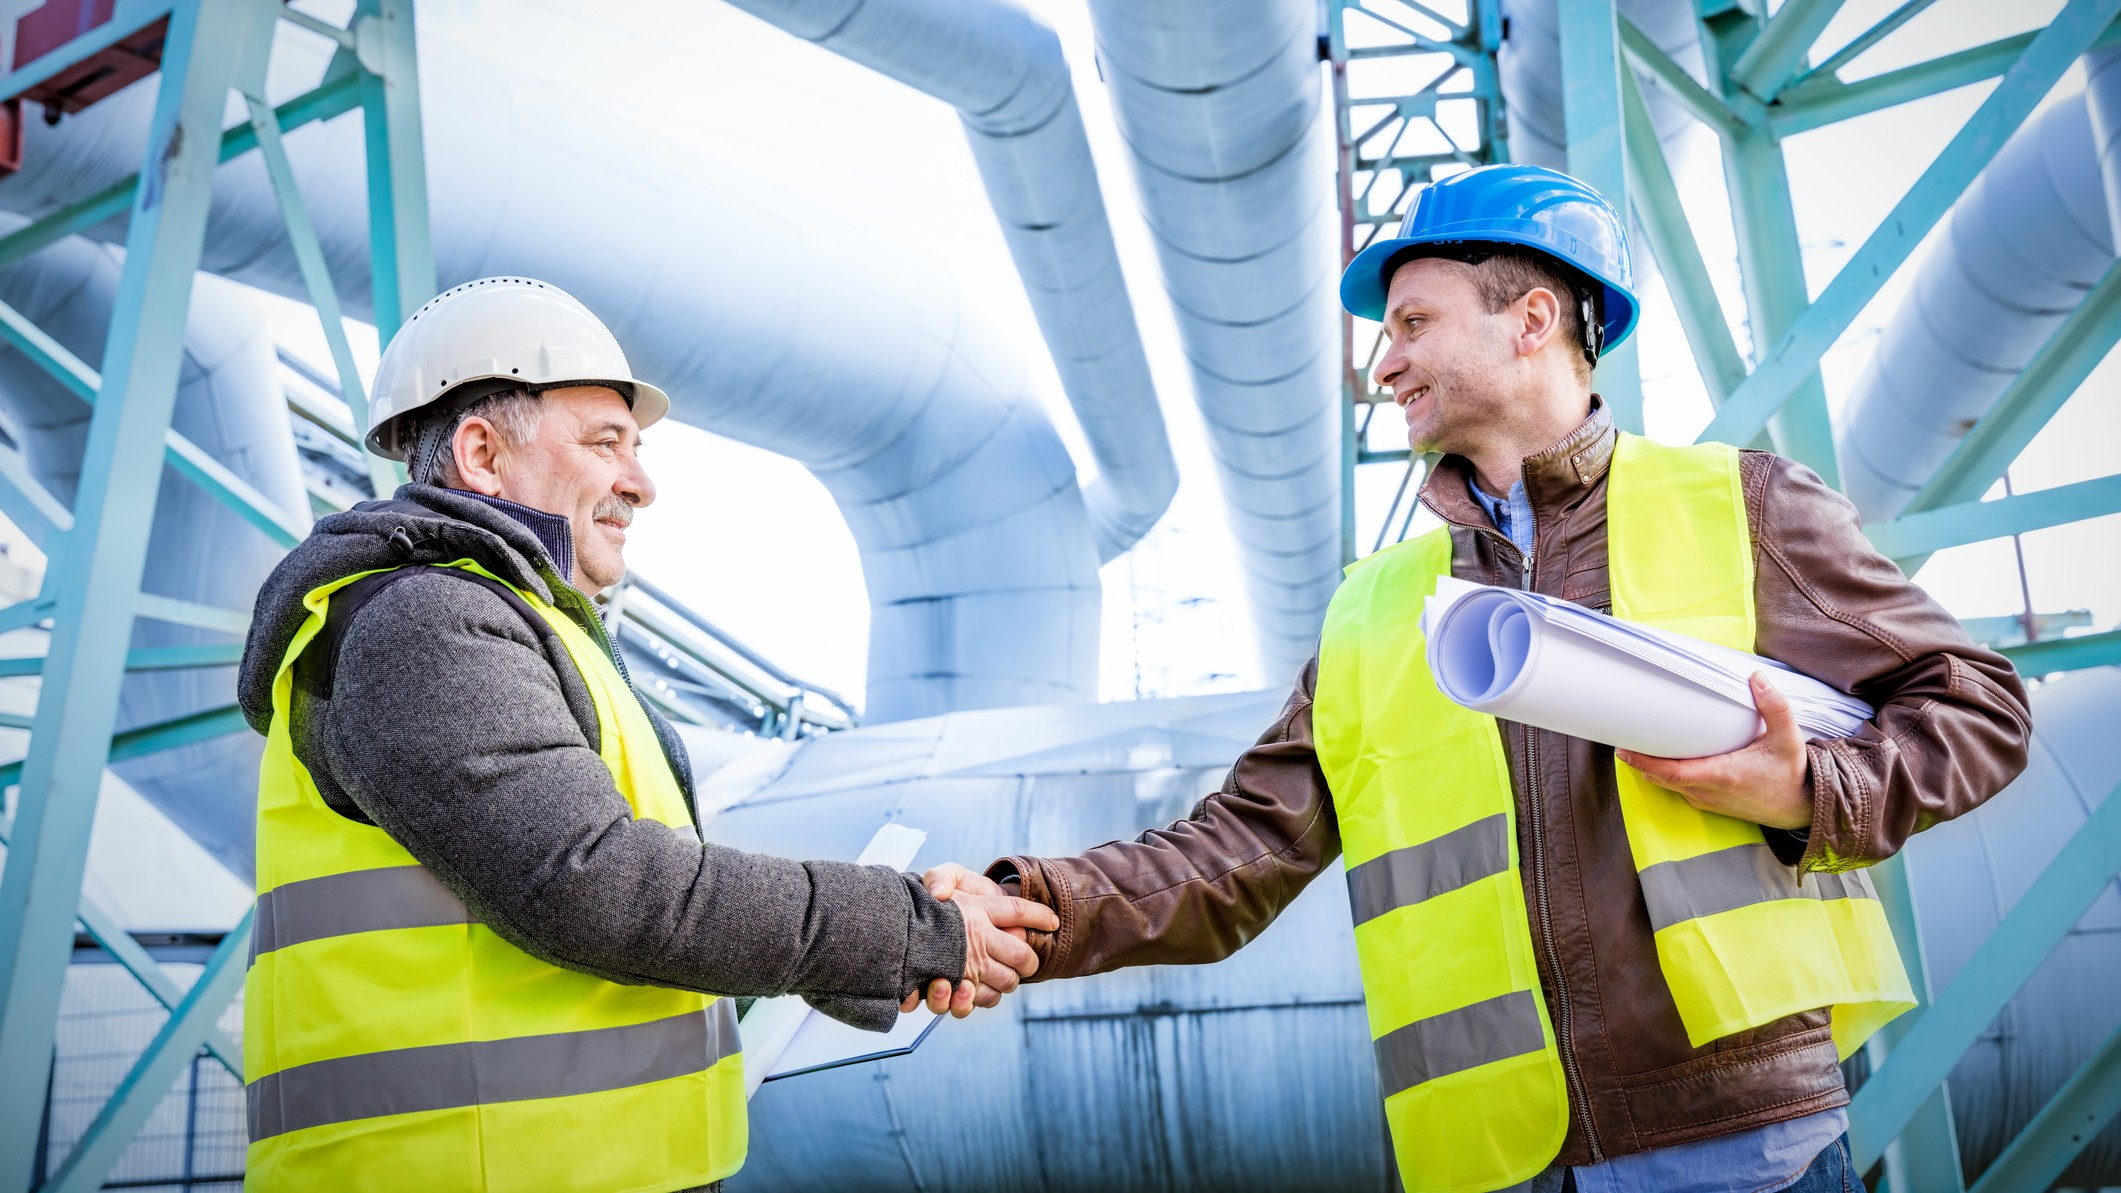 two men in mining hats shake hands on a deal with gas pipelines in the background, indicating good news for the gas and LPG share price